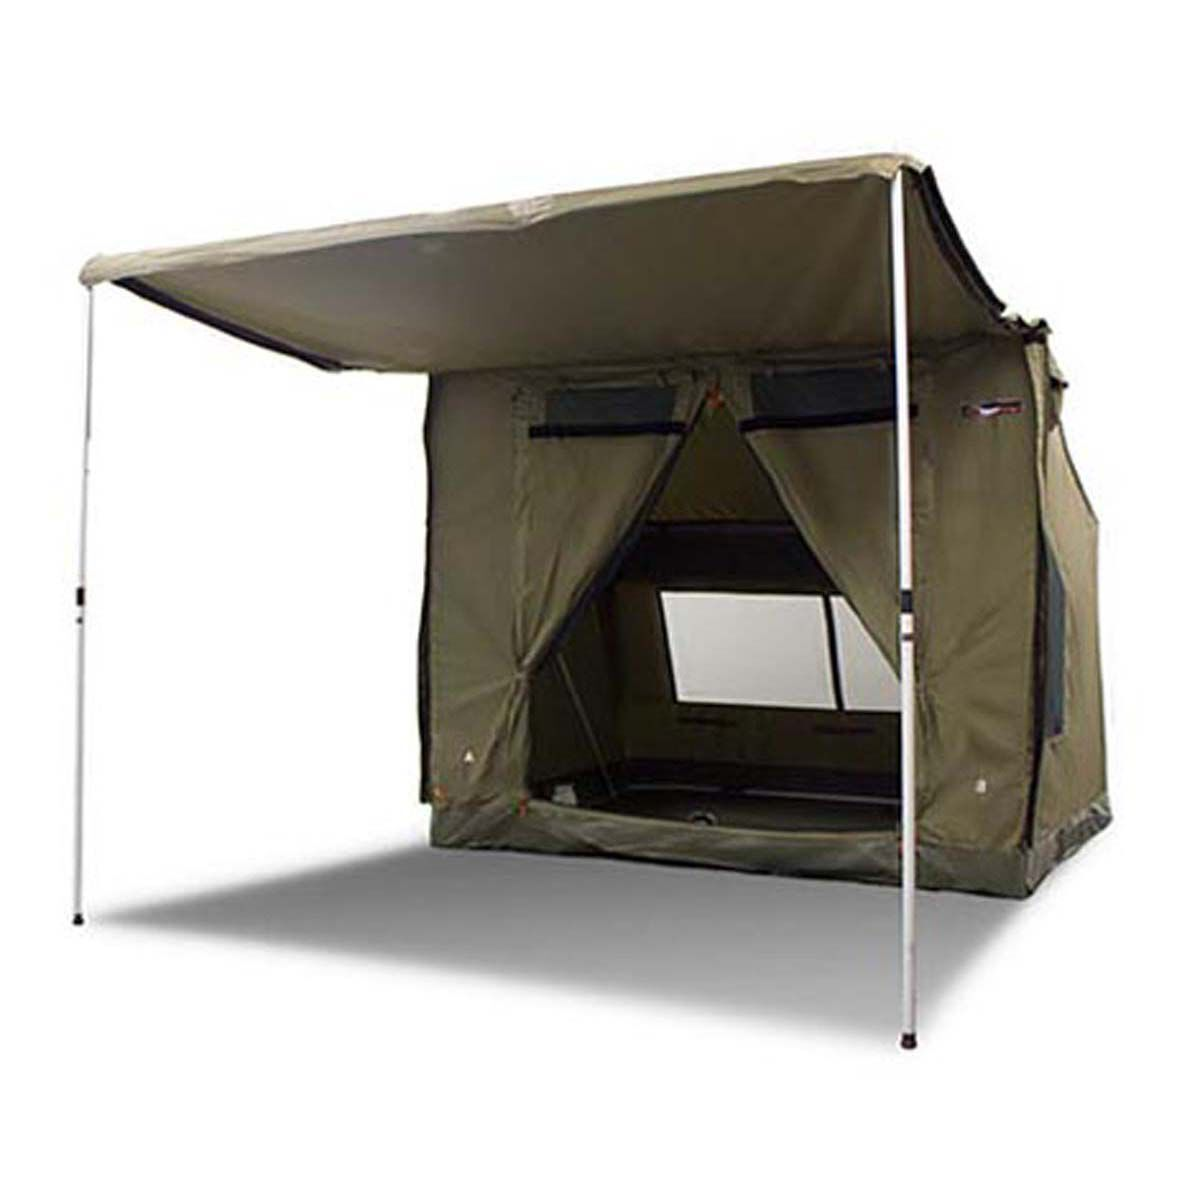 Oztent RV3 Touring Tent 3 Person  @ BCF